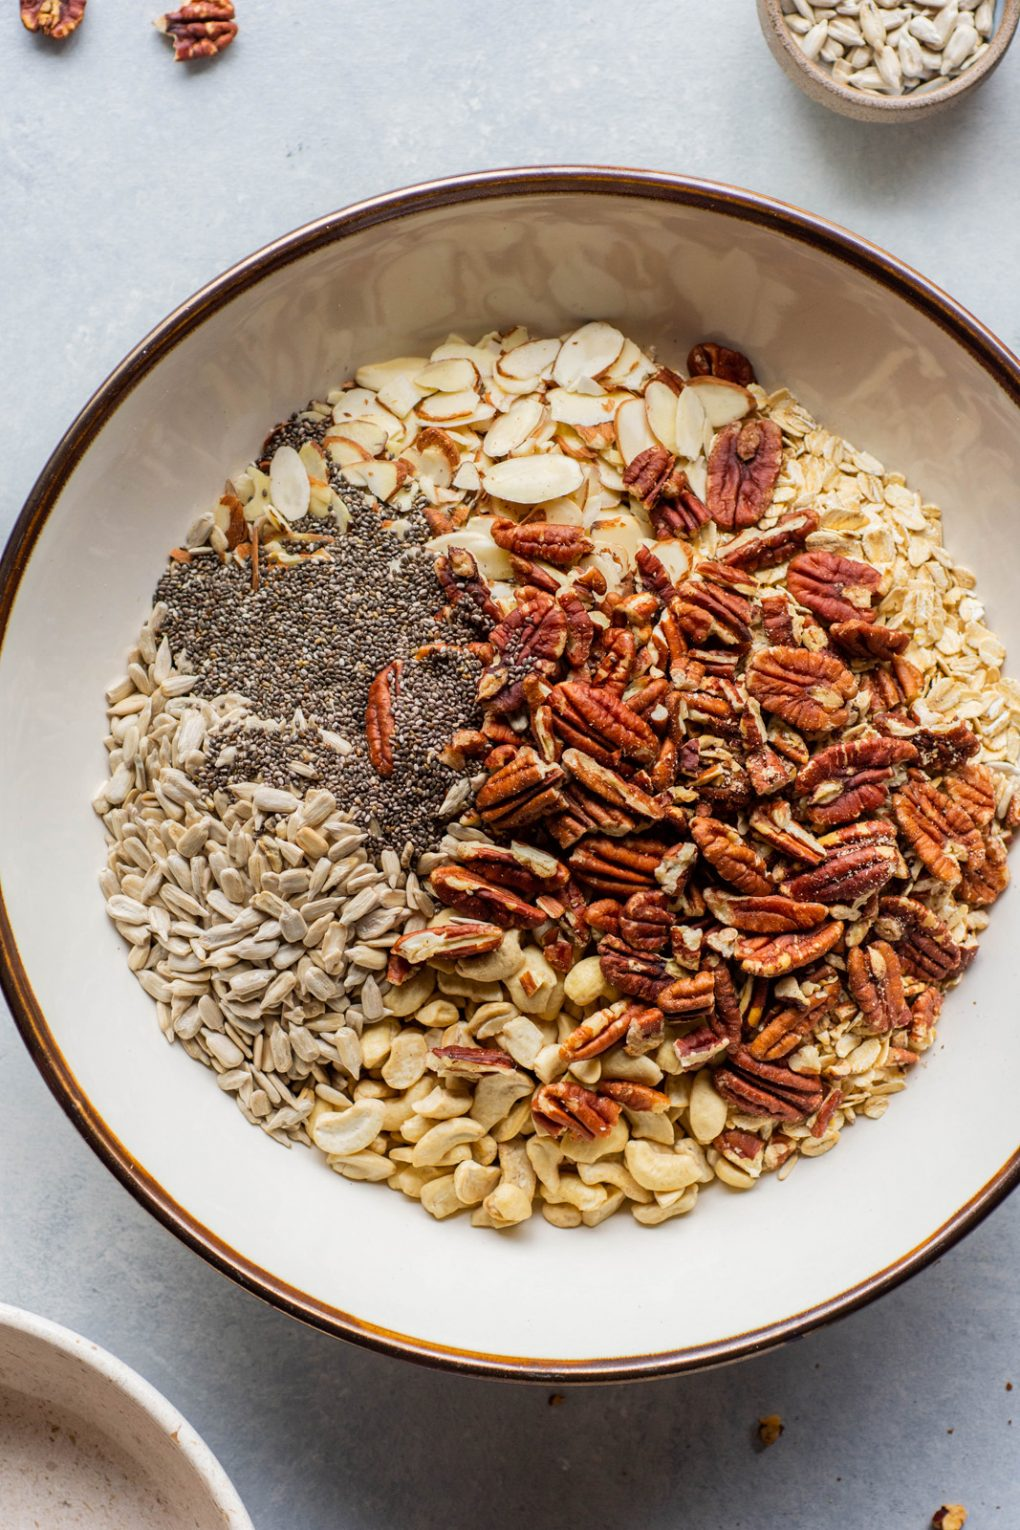 Overhead image of a large bowl filled with ingredients for crunchy gluten free granola - oats, pecans, cashews, sunflower seeds, and chia seeds.